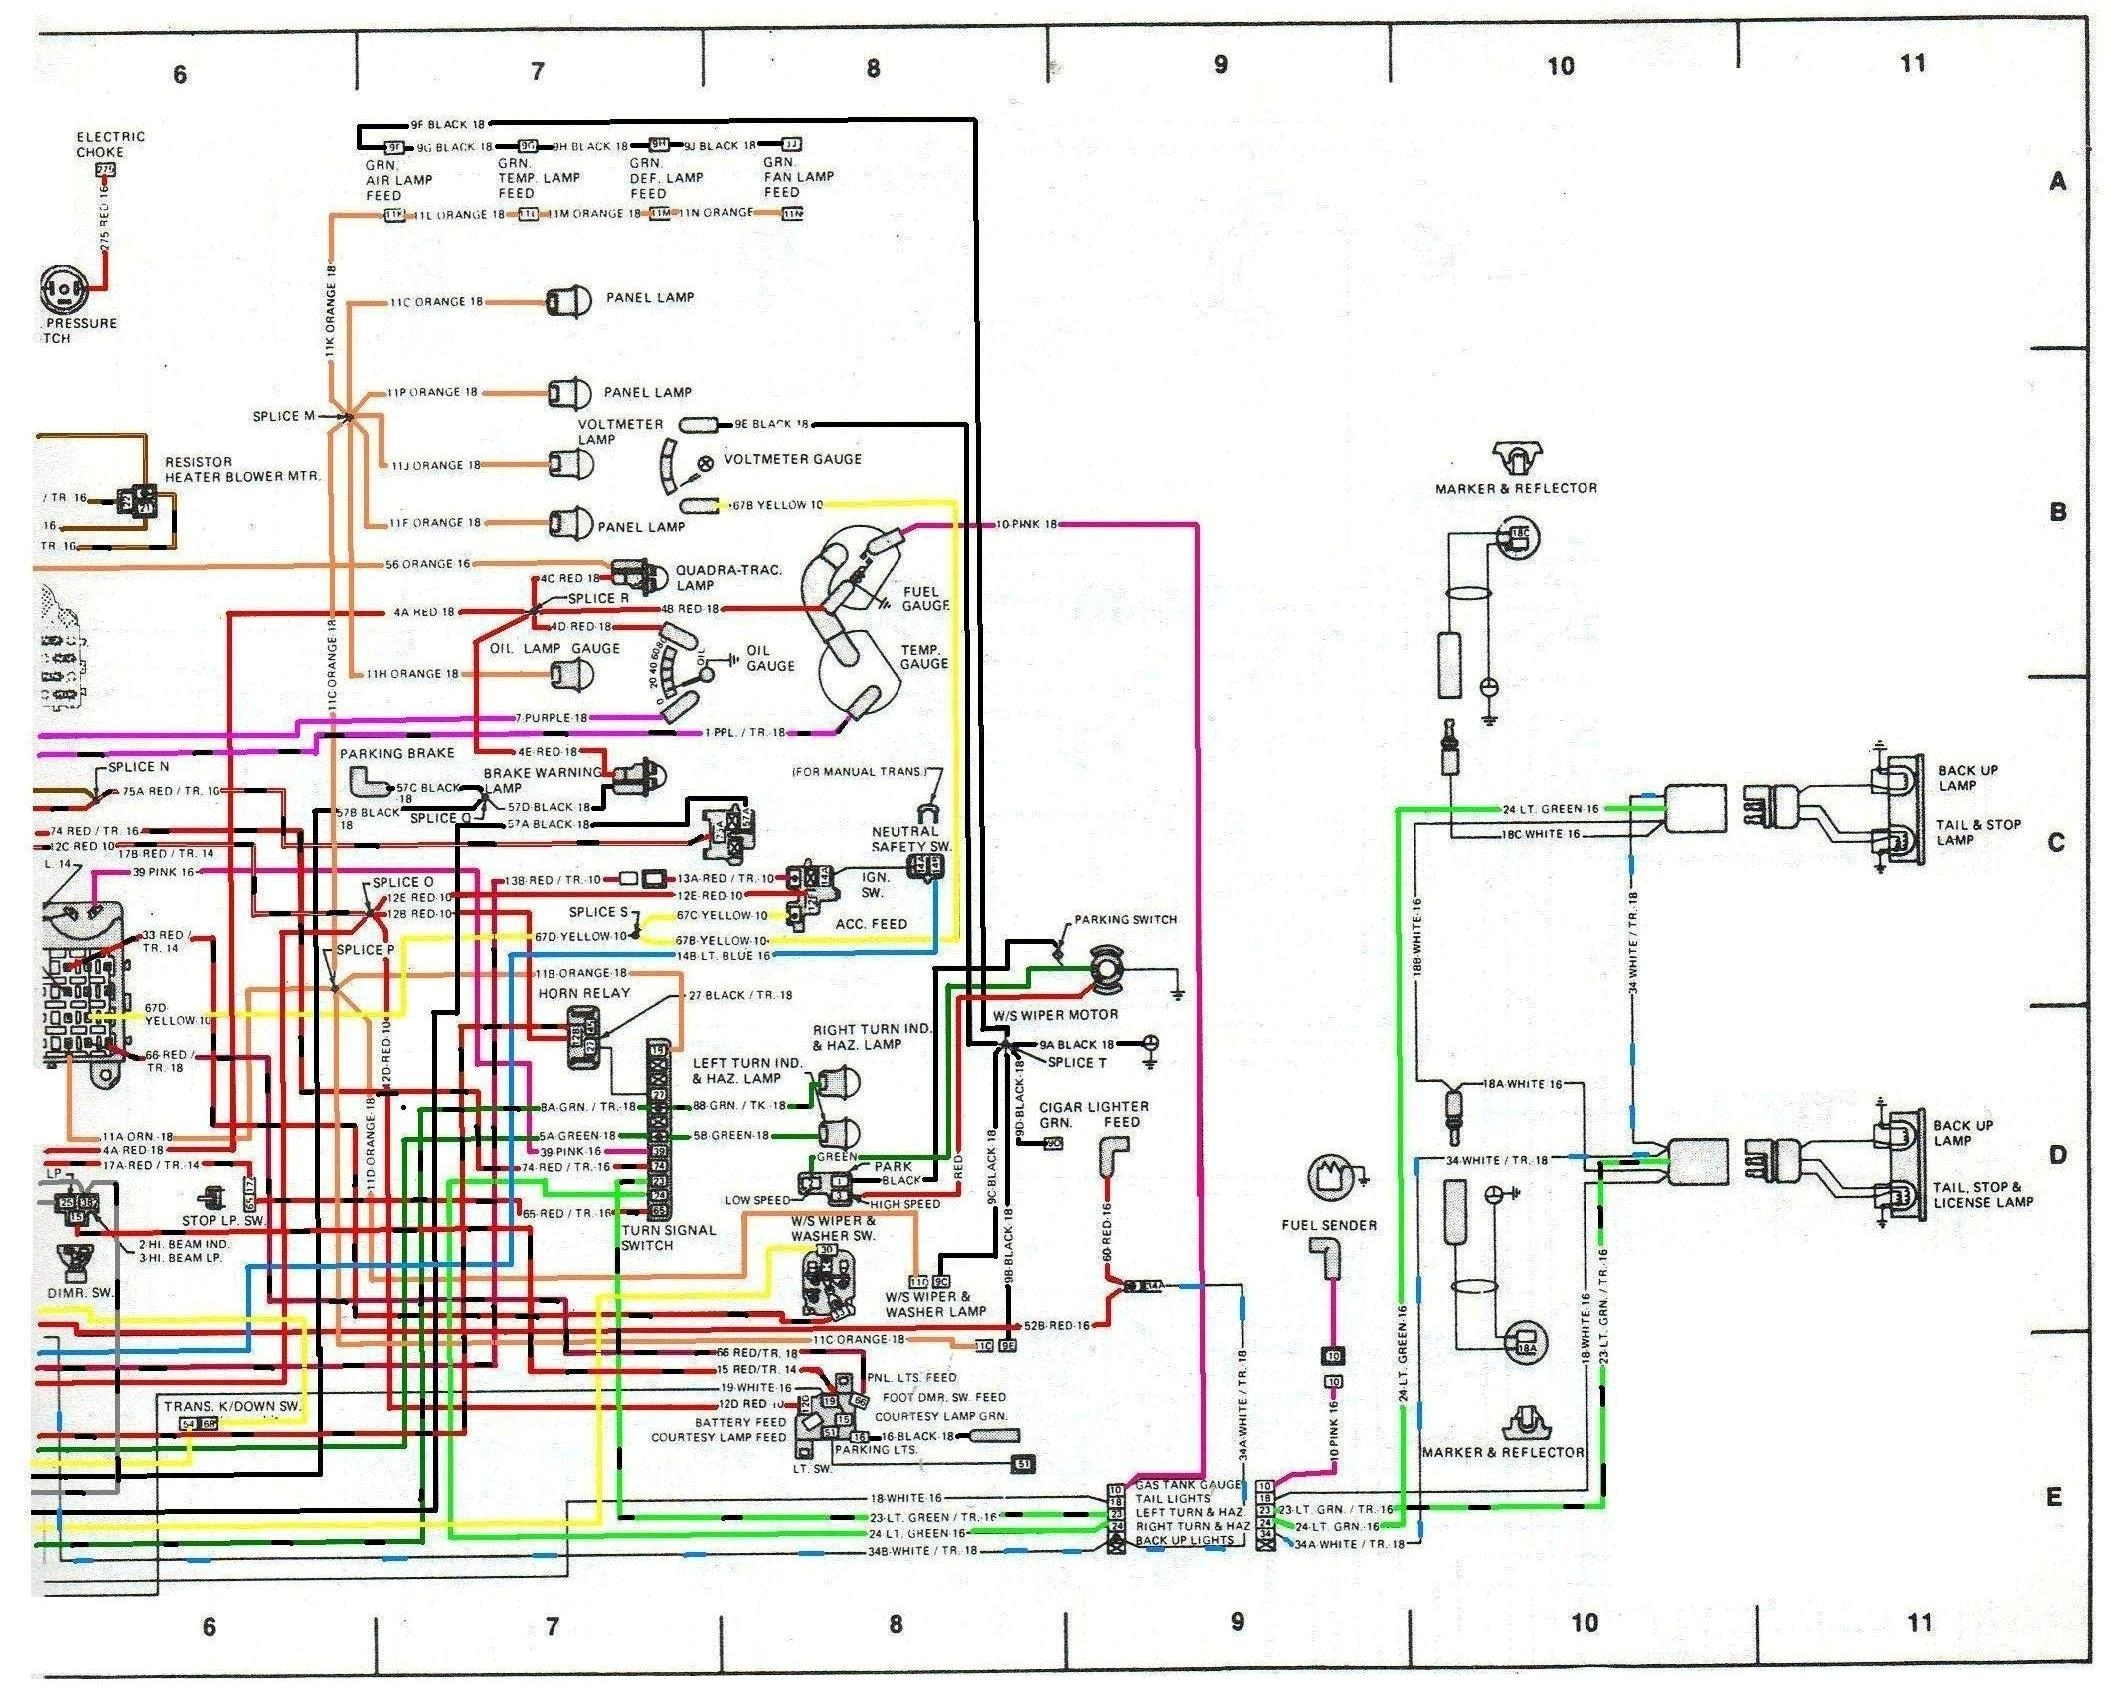 Dj5 Wiring Diagram For - 2002 Tahoe Alternator Wiring Diagram for Wiring  Diagram SchematicsWiring Diagram Schematics